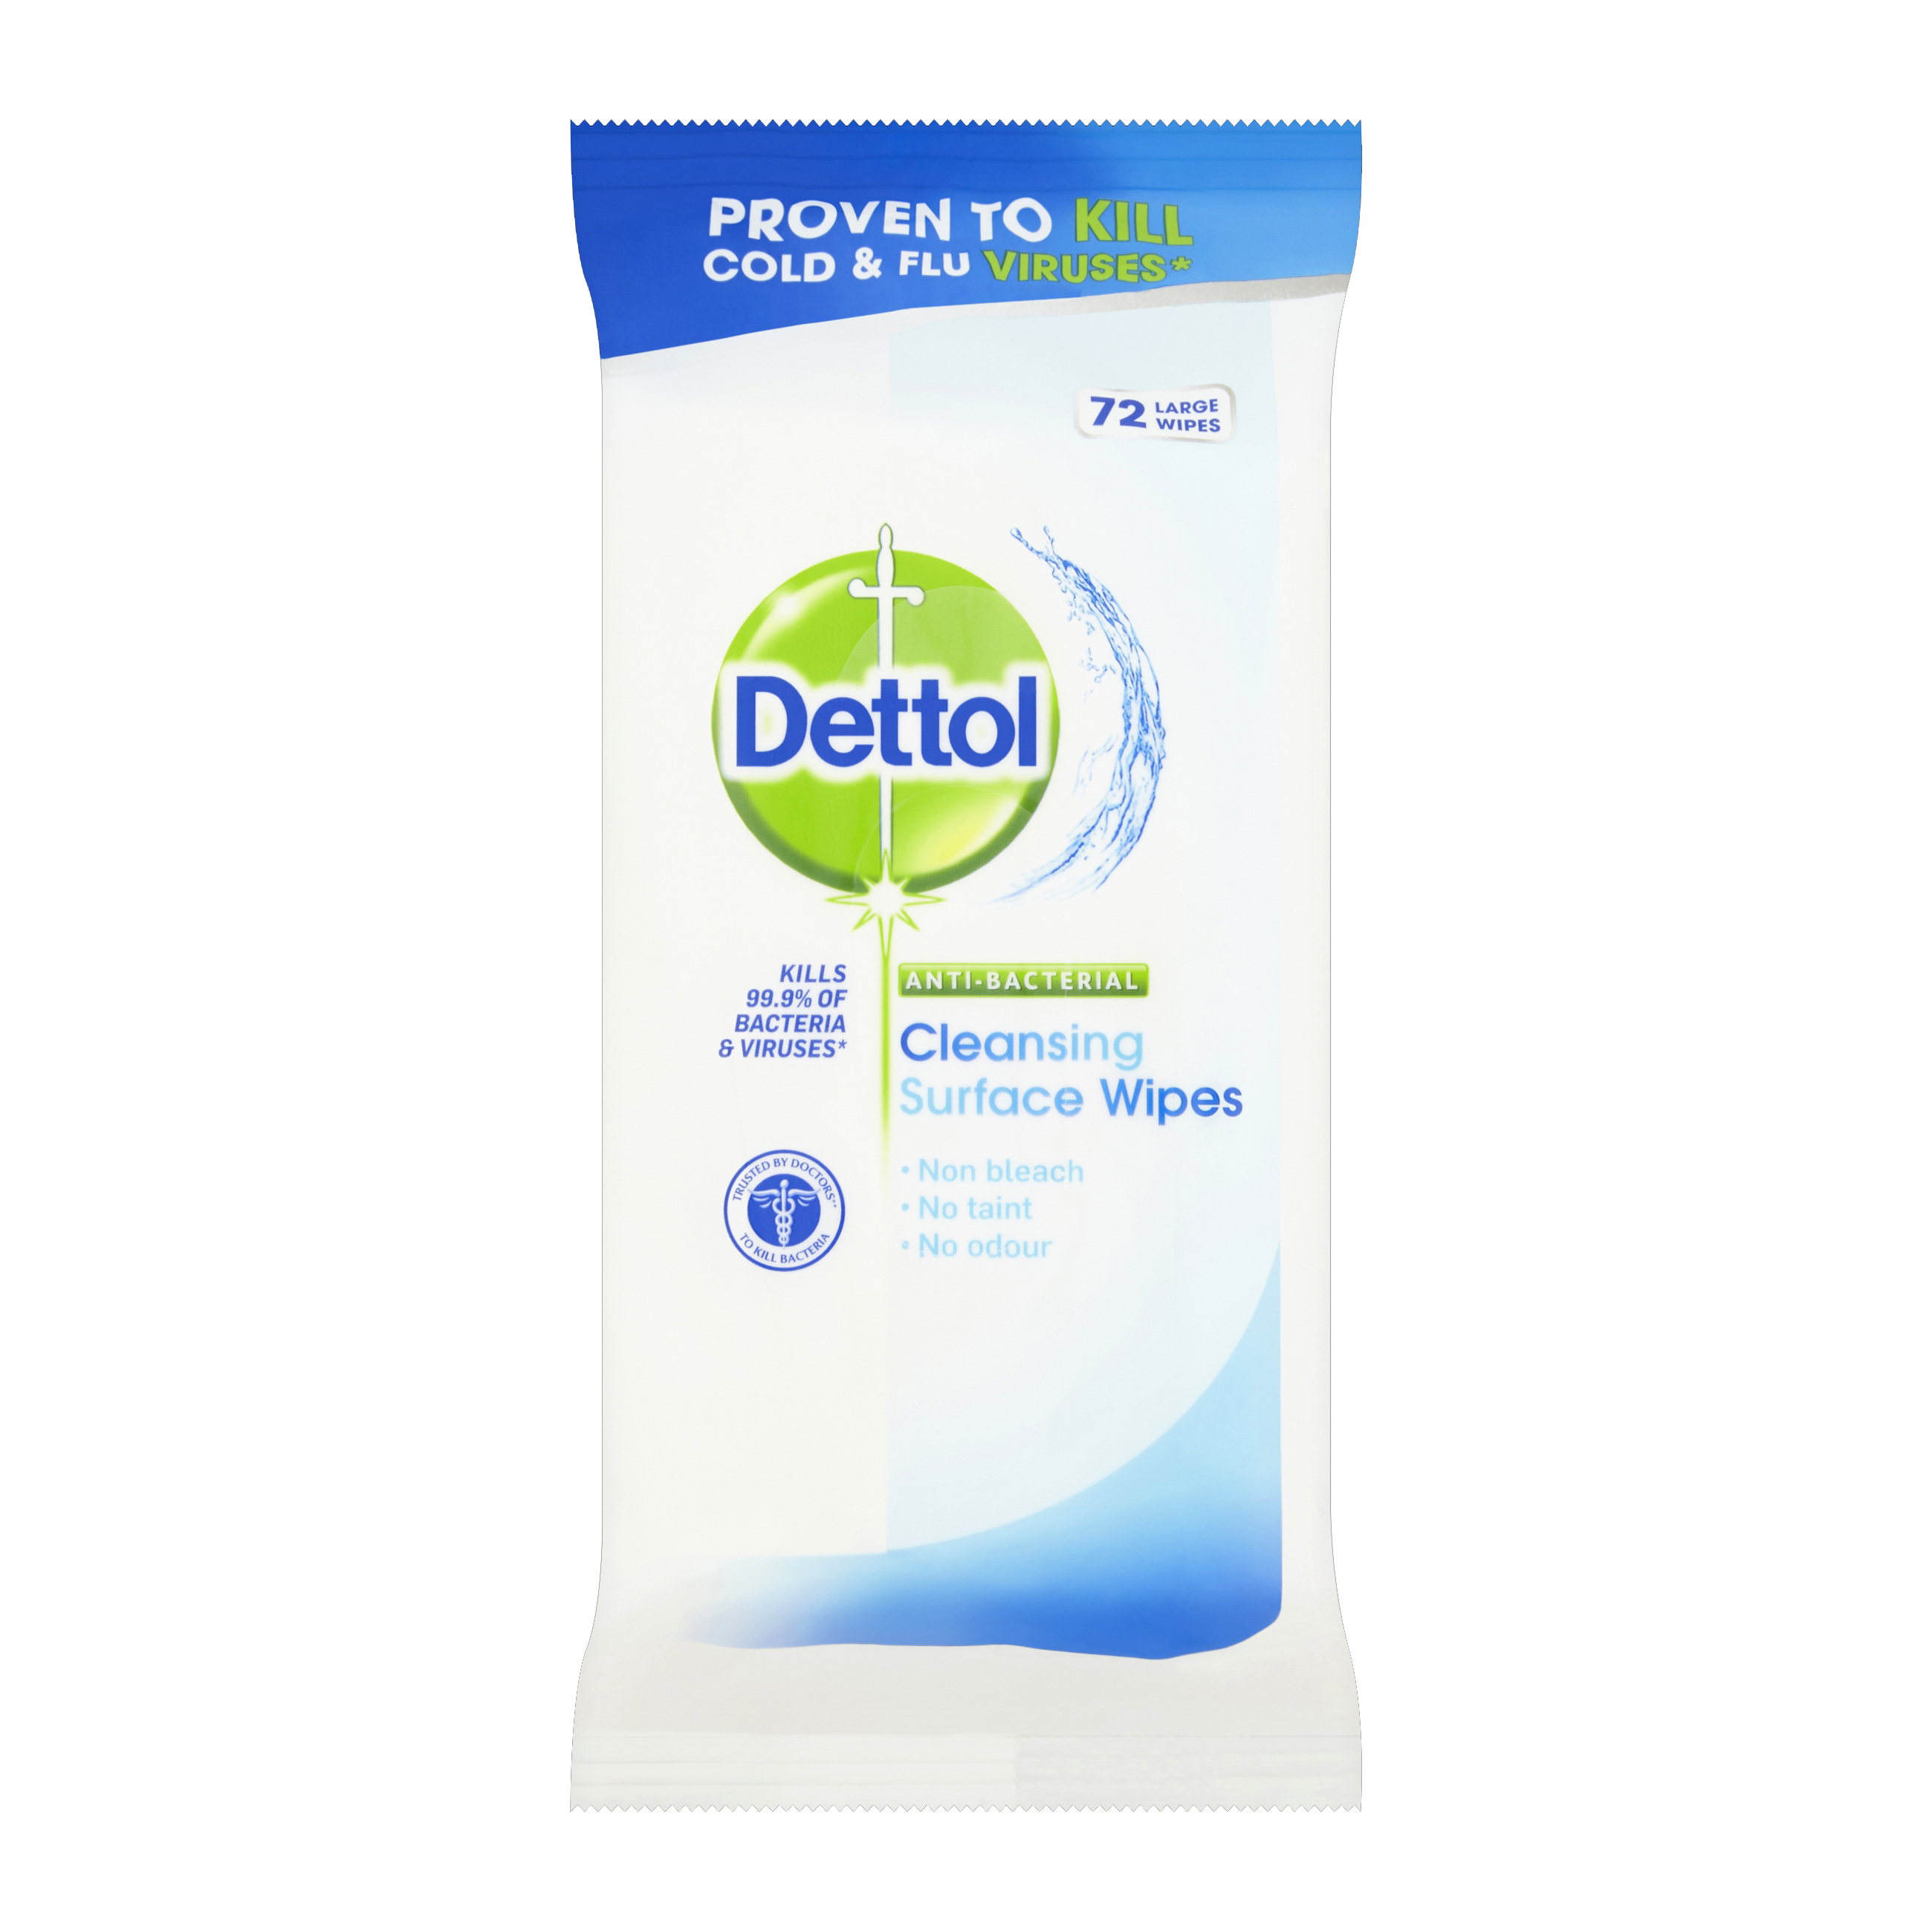 Disinfectant Wipes Dettol Antibacterial Surface Cleaning Wipes Ref RB789643 72 Wipes